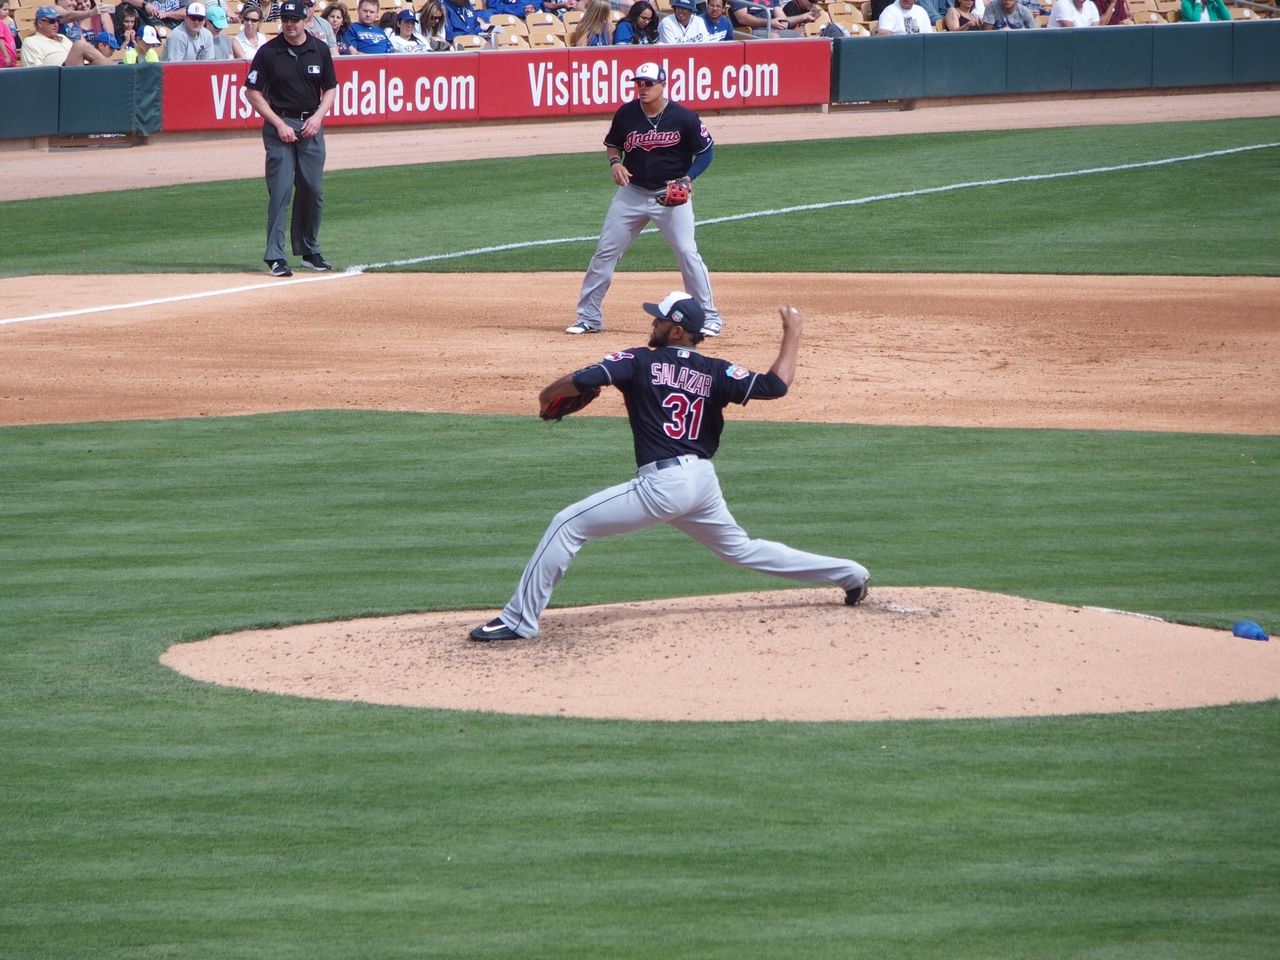 Salazar pitches to the Dodgers on Tuesday, March 7